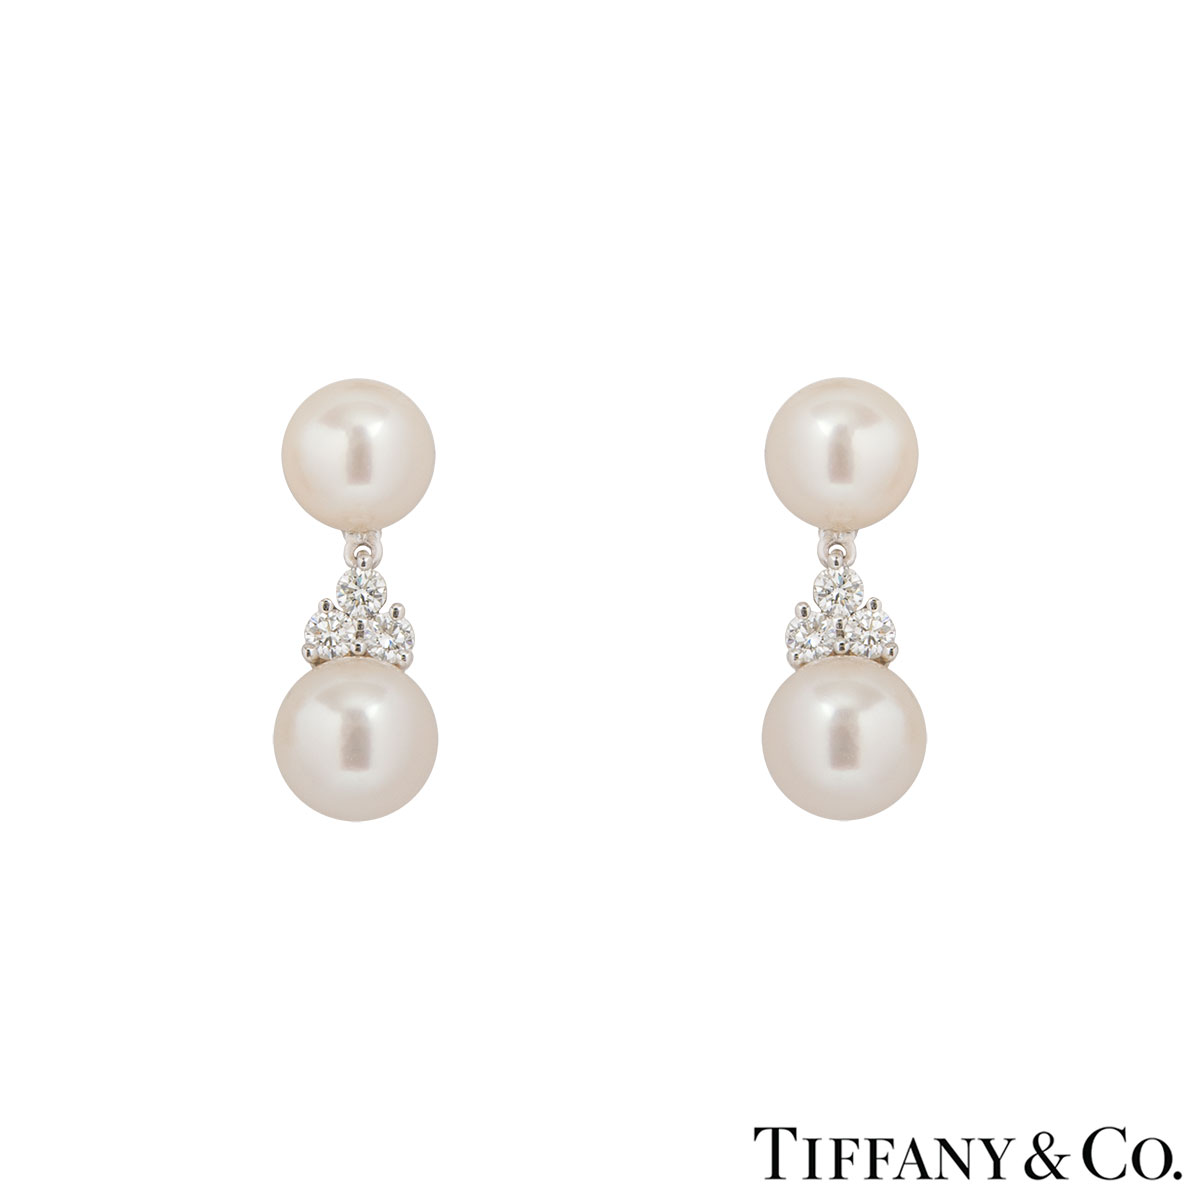 Tiffany & Co. Platinum Pearl & Diamond Drop Aria Earrings